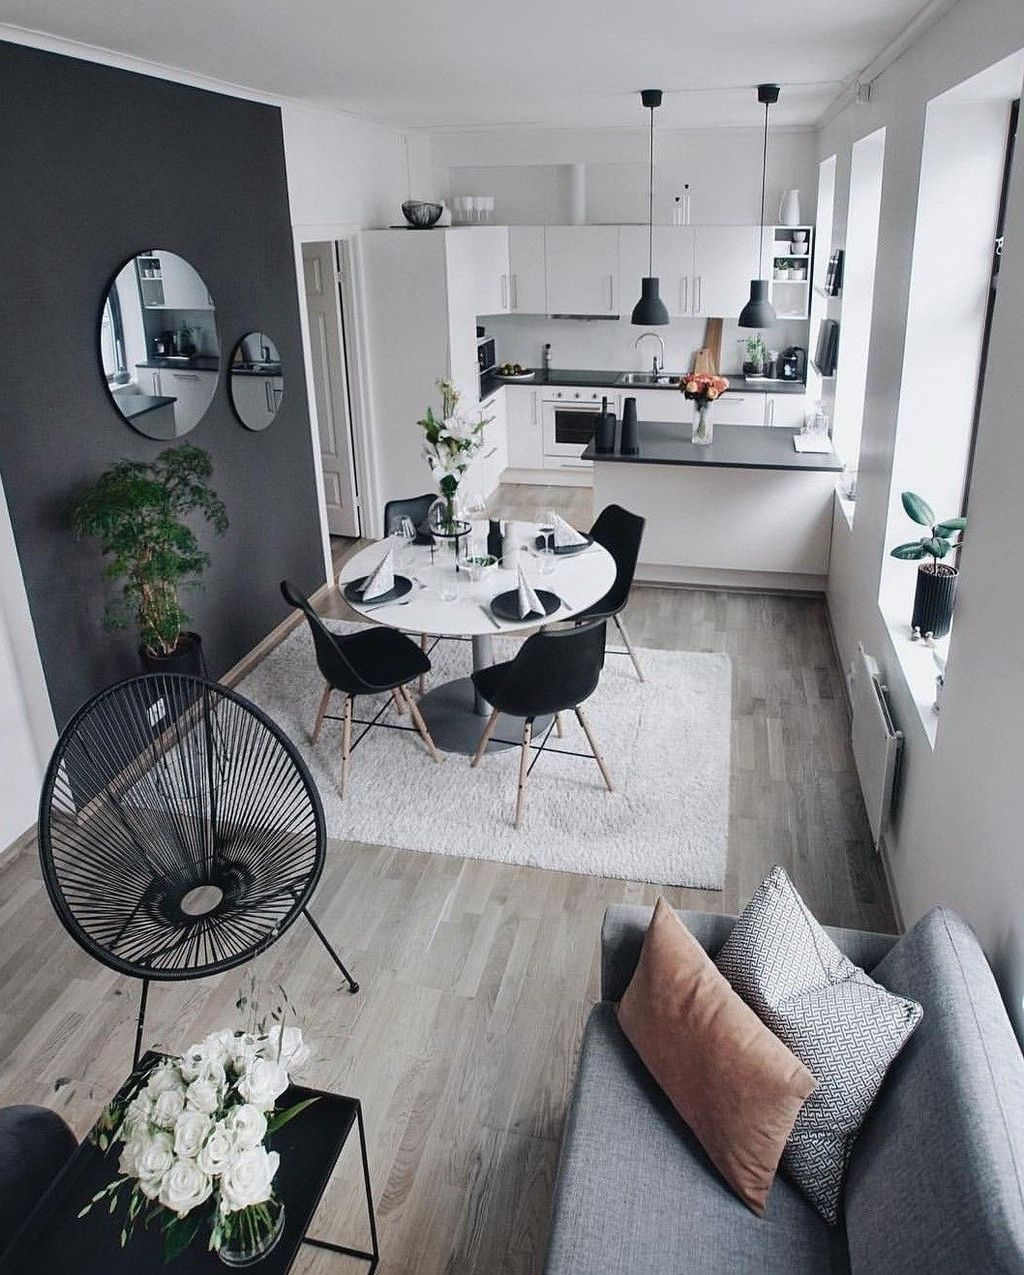 30 Latest Living Room Decorating Ideas For Your Small Apartment Open Living Room Design Small Living Room Design Small Living Room Decor